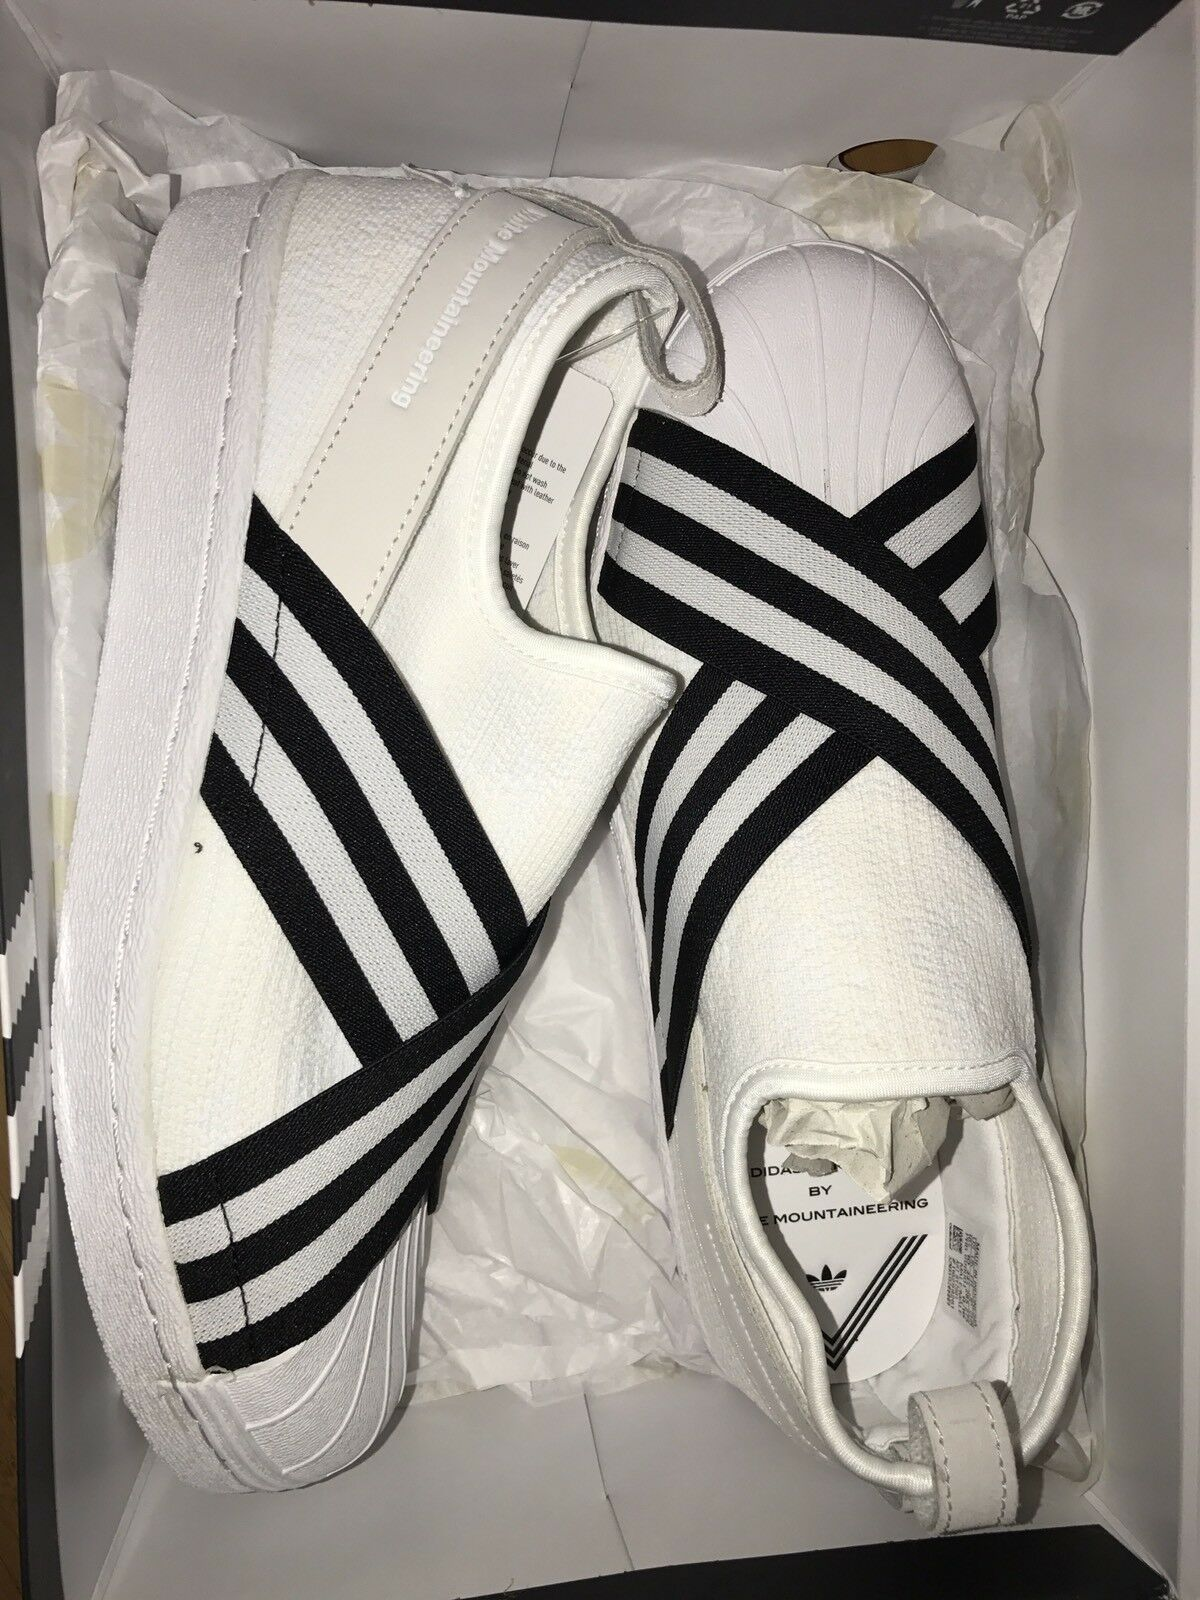 White mountaineering X Adidas Prime Knit Slip On Superstar Nmd Nmd Nmd Wang Yeezy 10.5 e59391